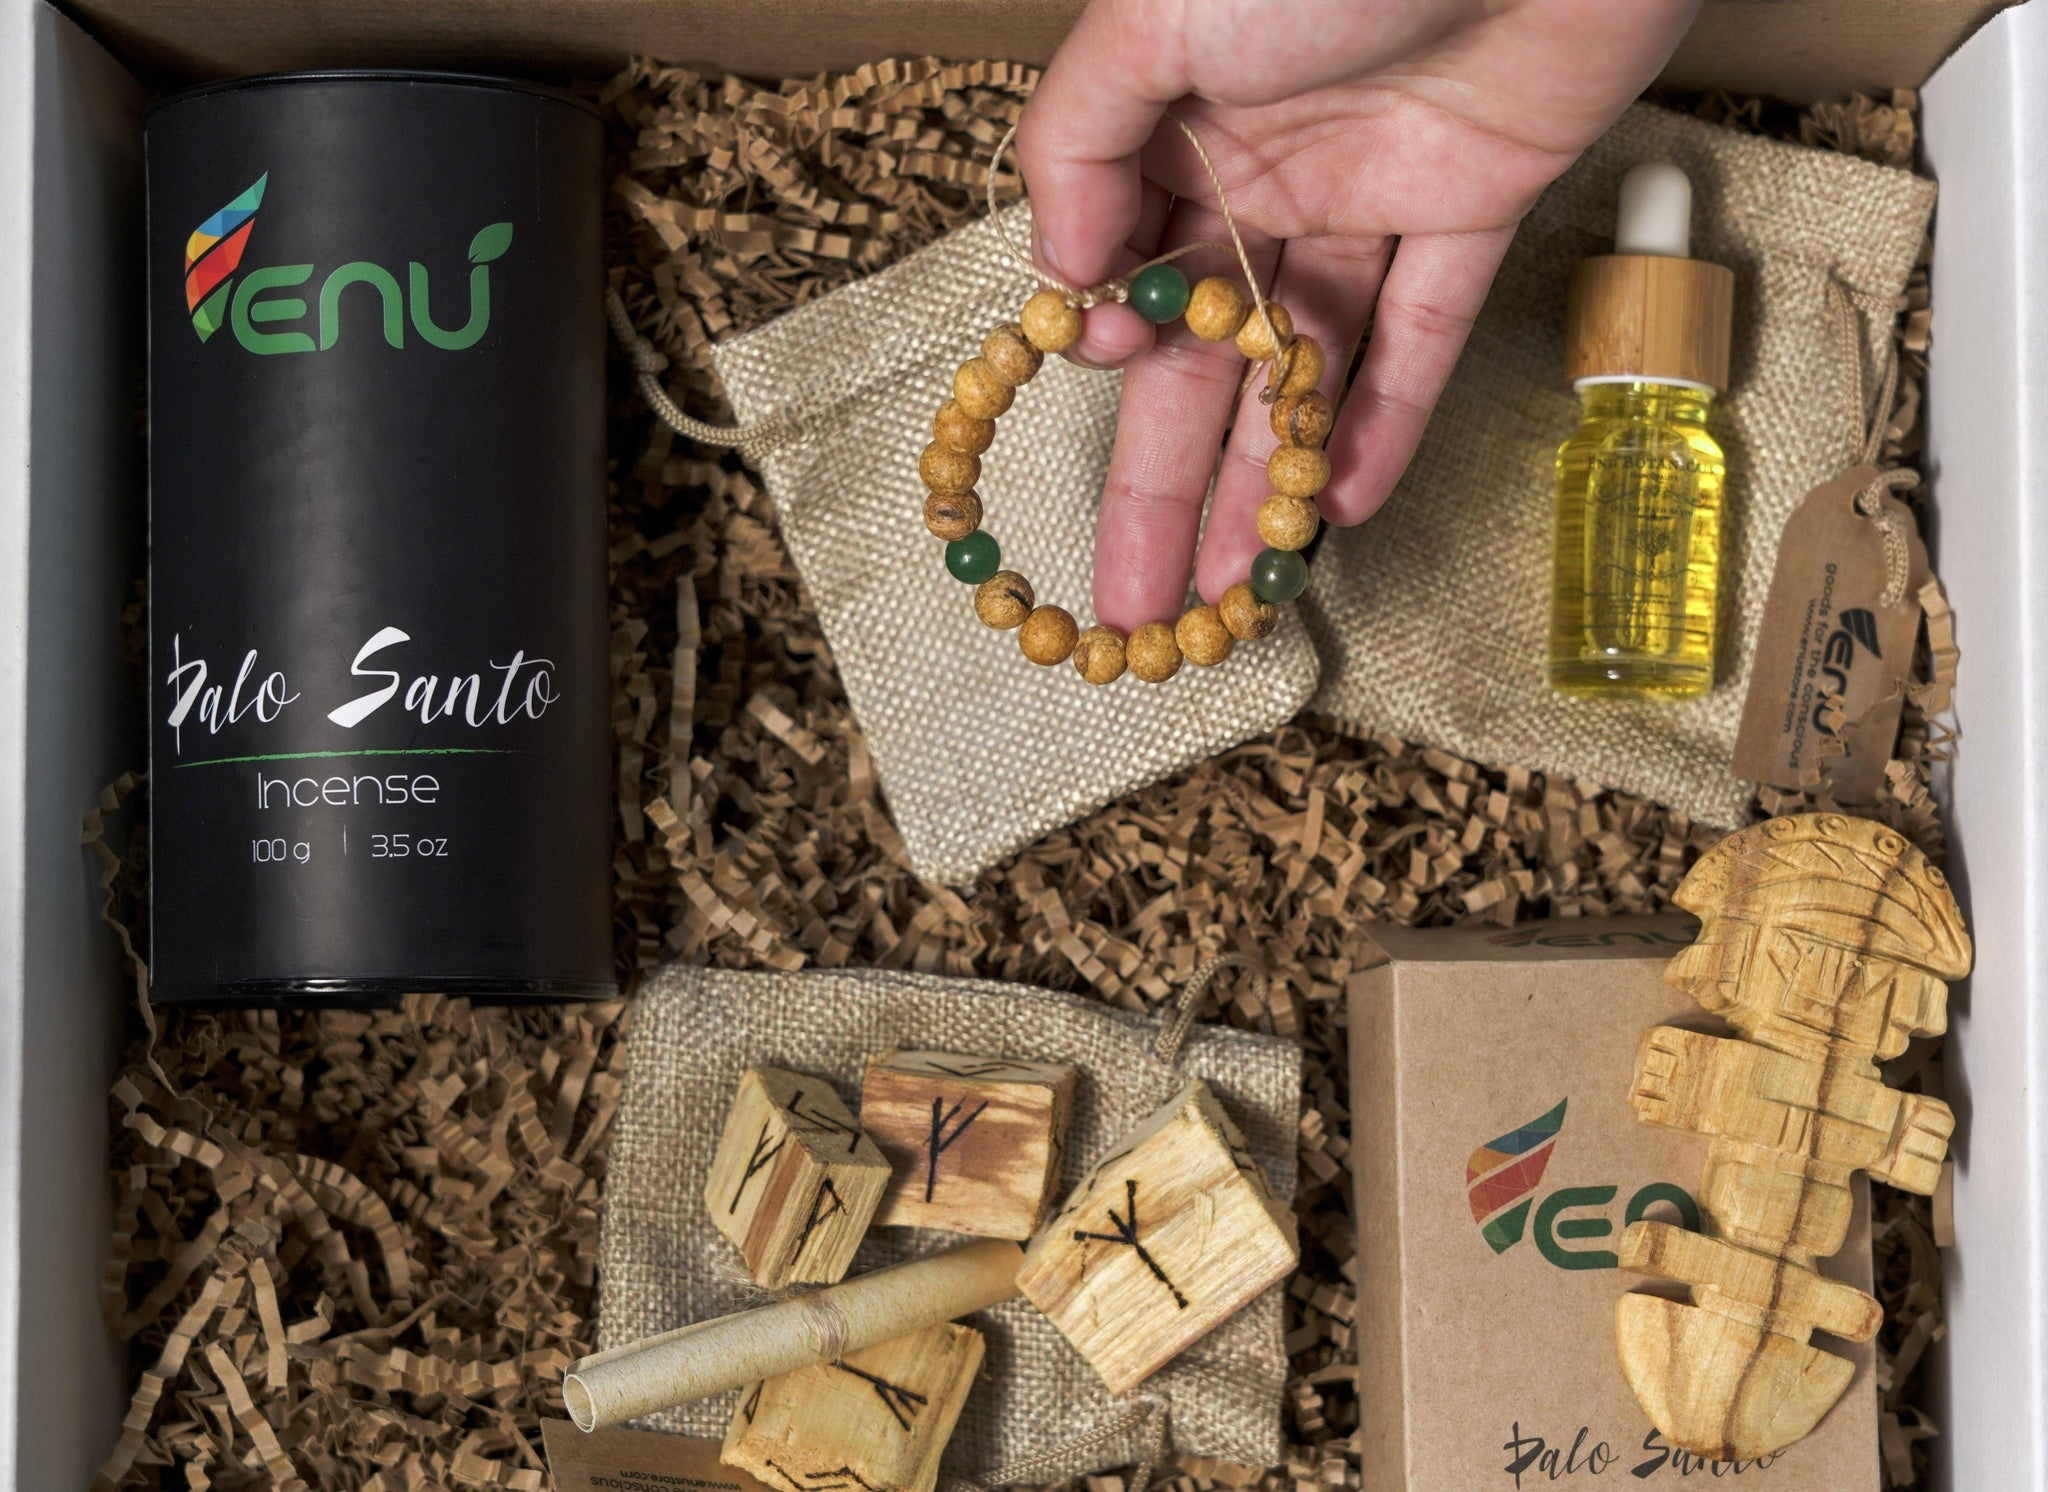 Make Your Own Palo Santo Kit